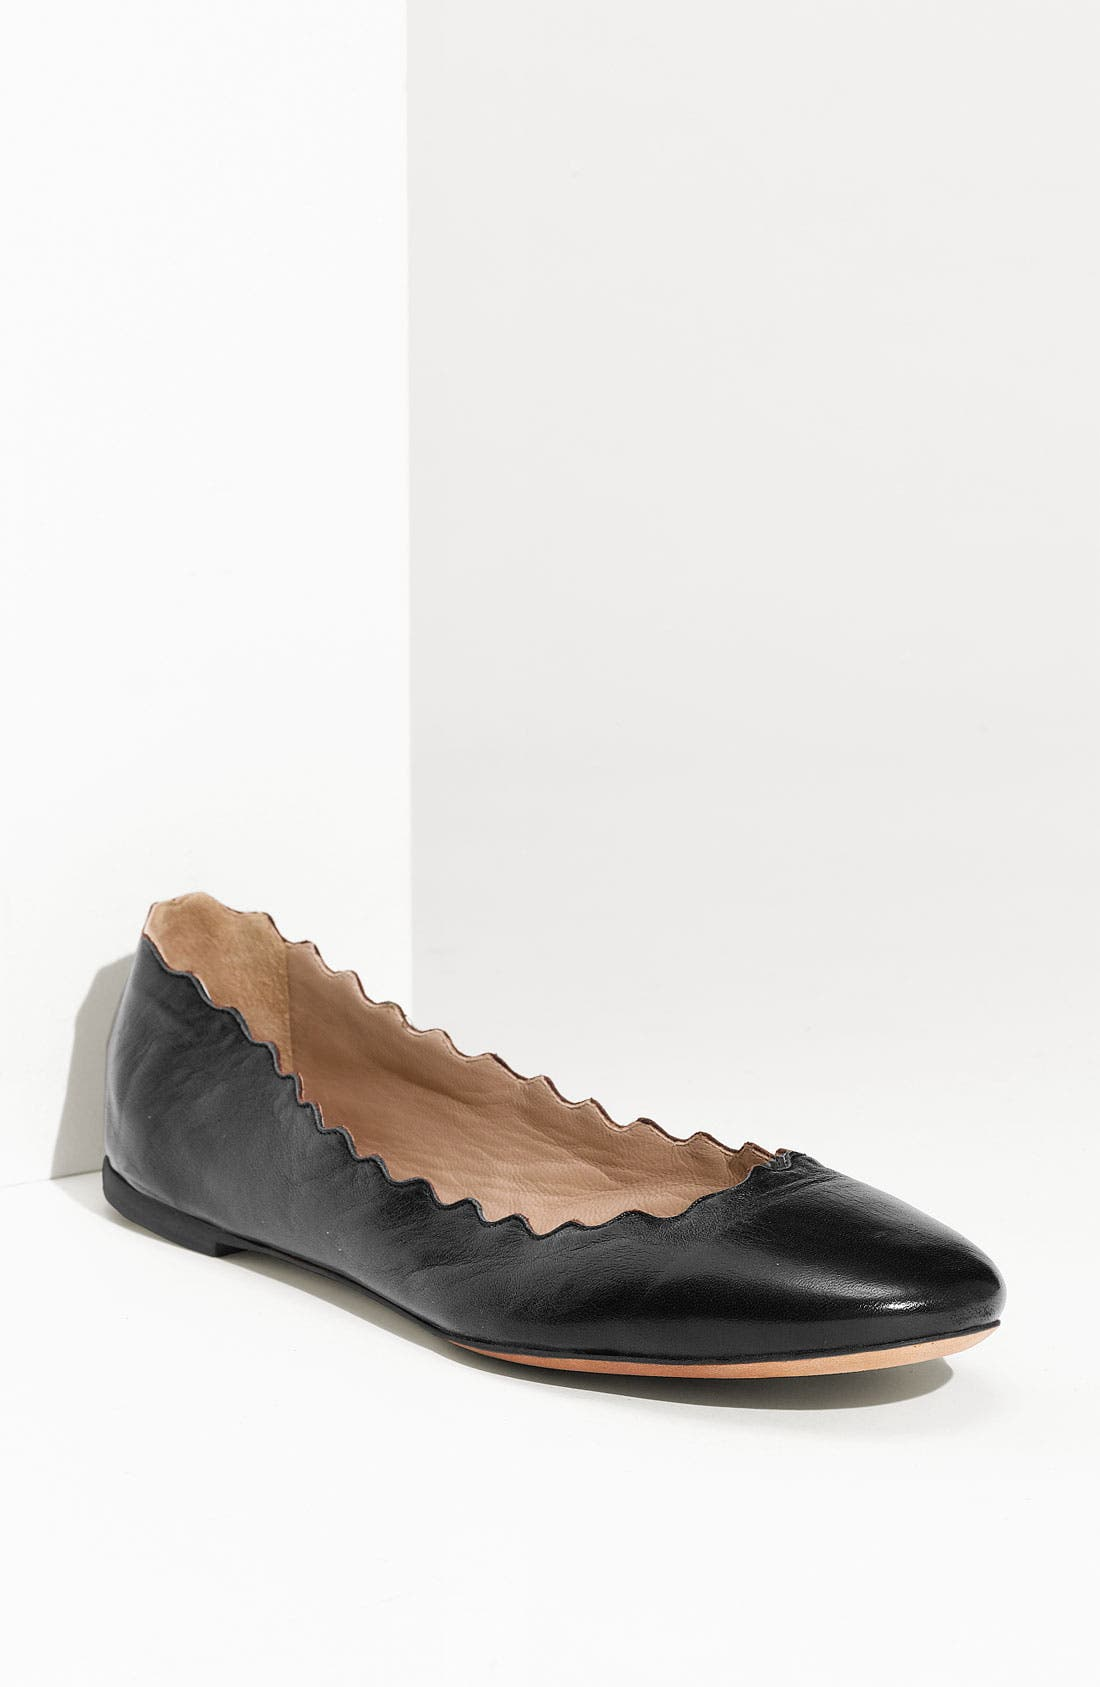 Alternate Image 1 Selected - Chloé Scalloped Ballet Flat